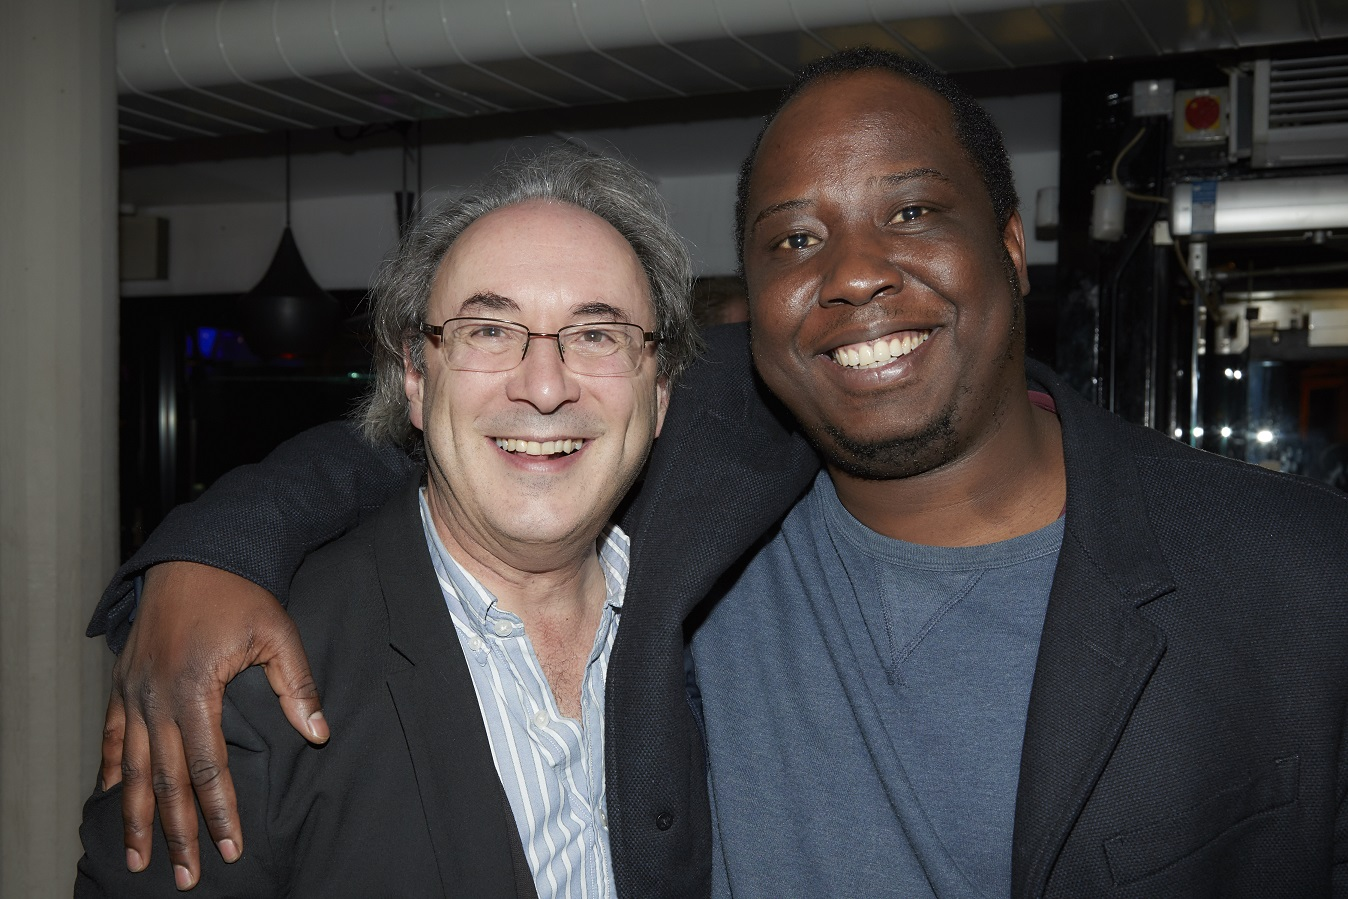 (L-R) Outgoing Nottingham Playhouse Artistic Director Giles Croft and playwright Mufaro Makubikia